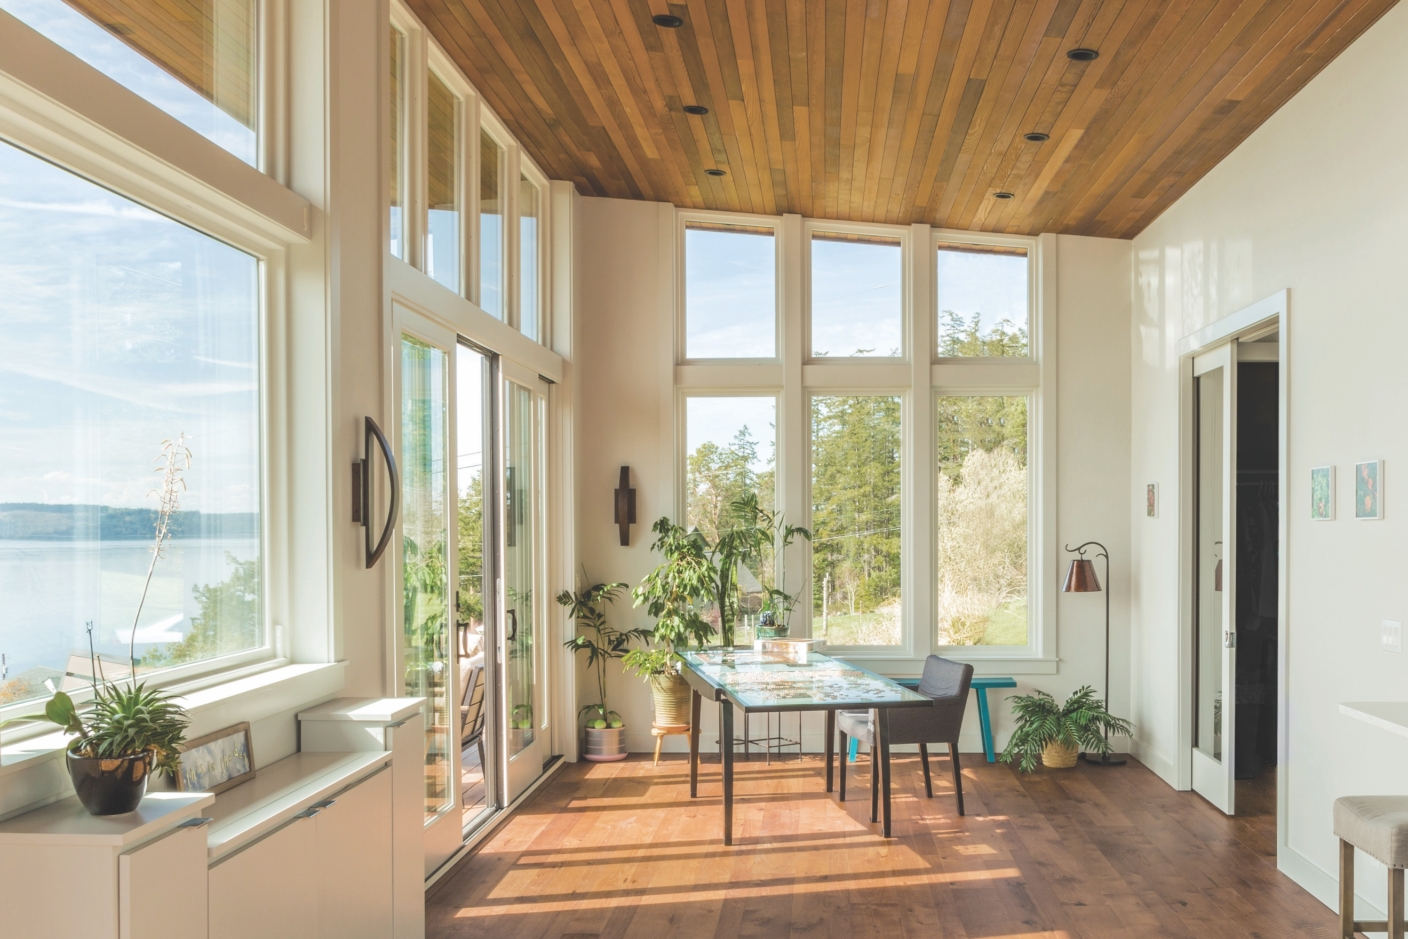 Bloom House interior with large windows onto natural landscape, with wood-paneled floors and ceiling